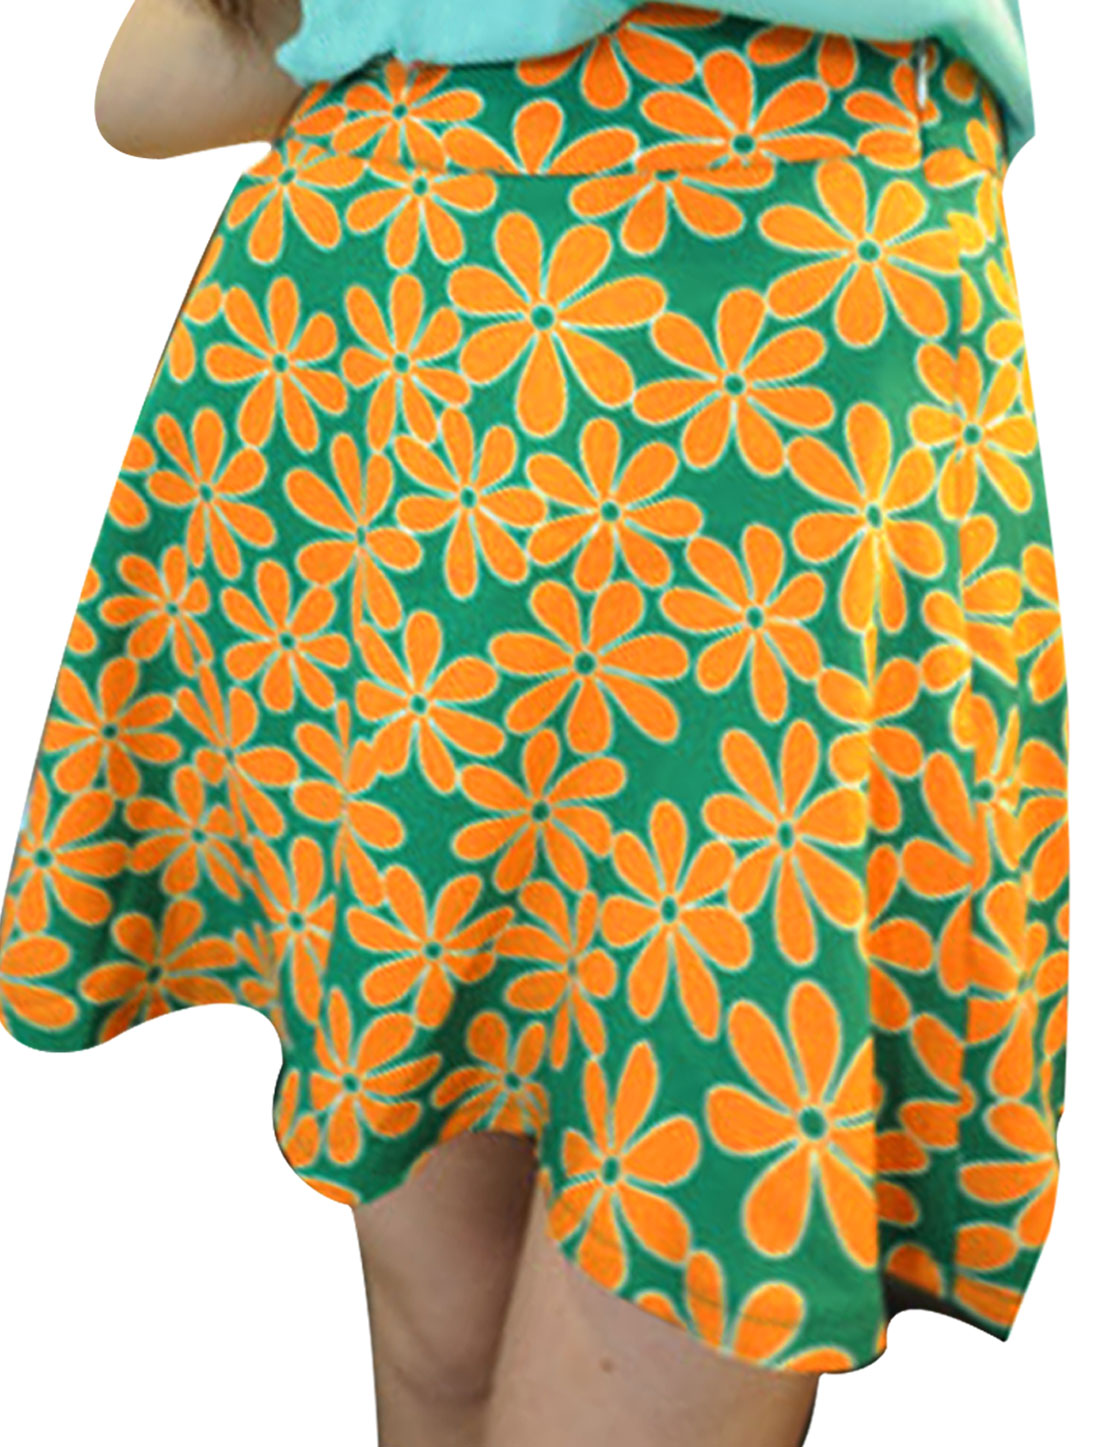 Women Orange S Floral Prints Consealed Zipper Back Round Hem Skirt